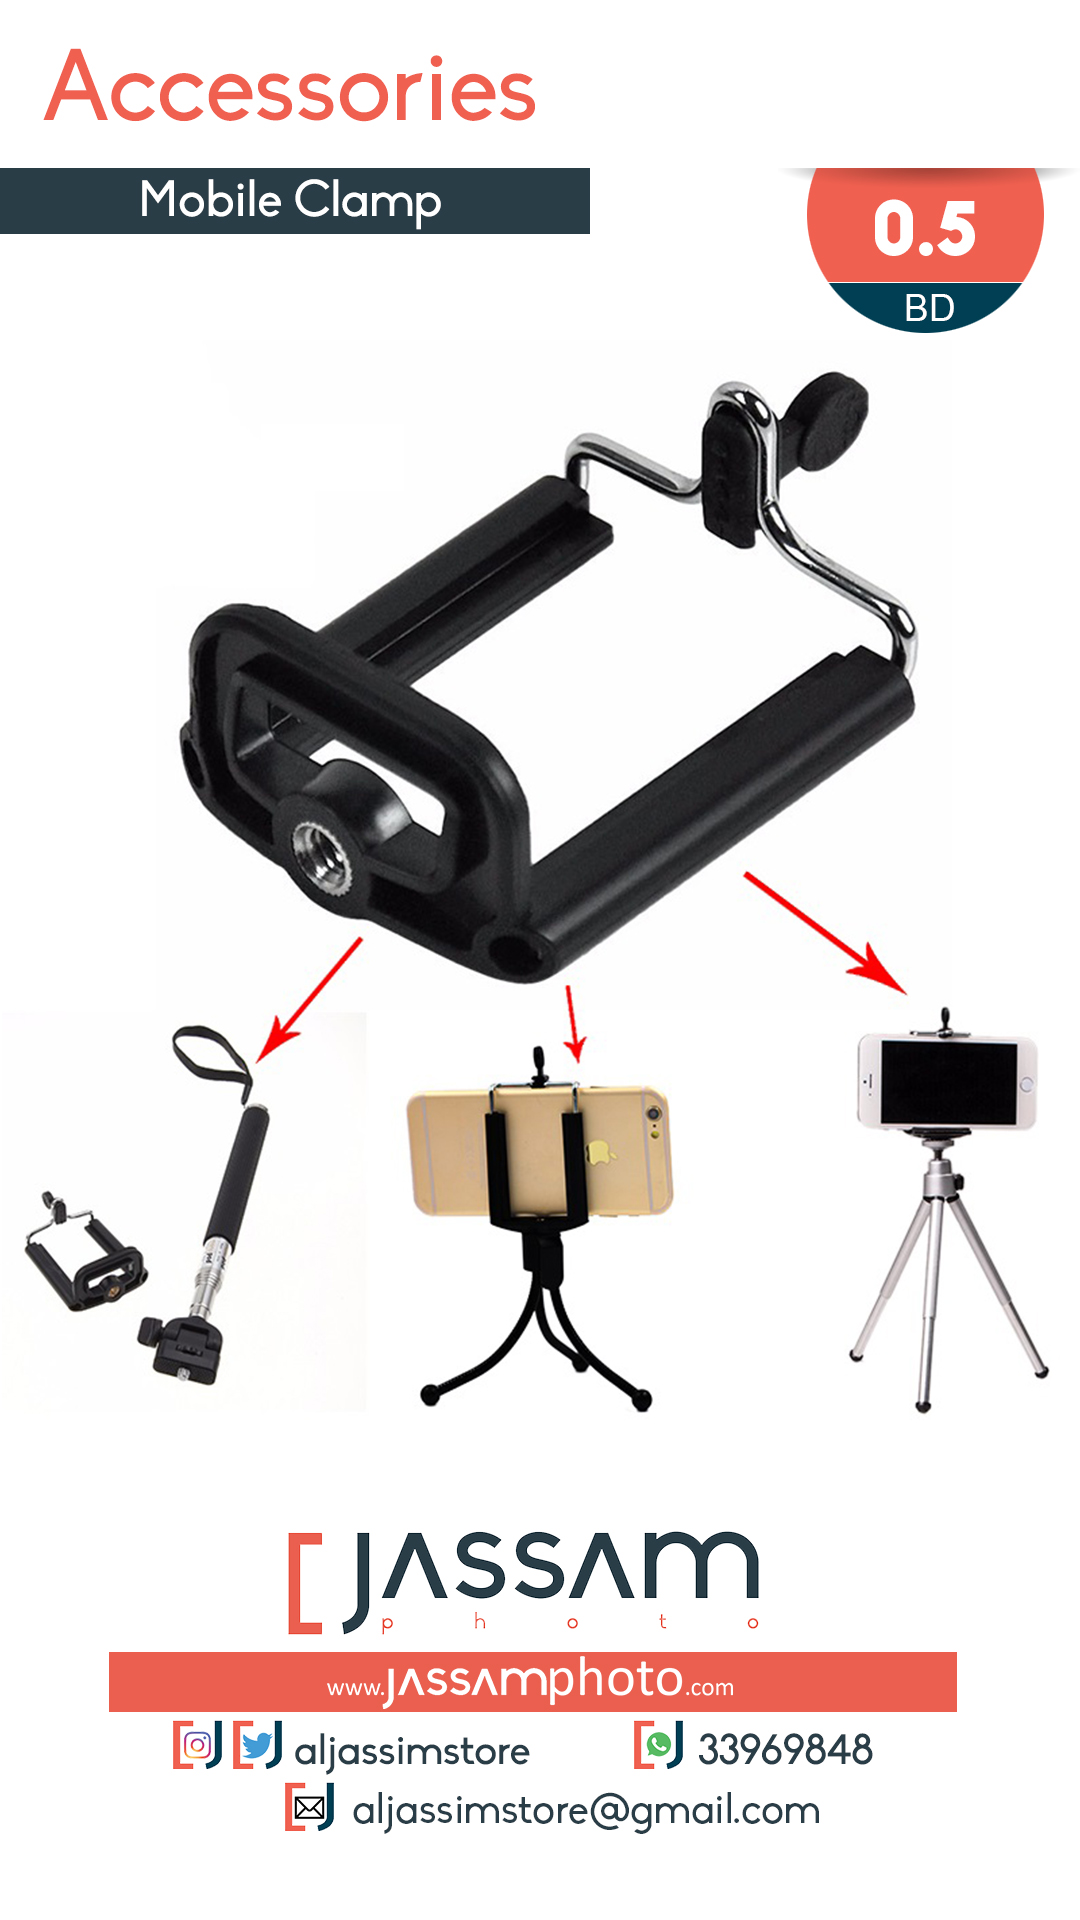 Mobile Clamp